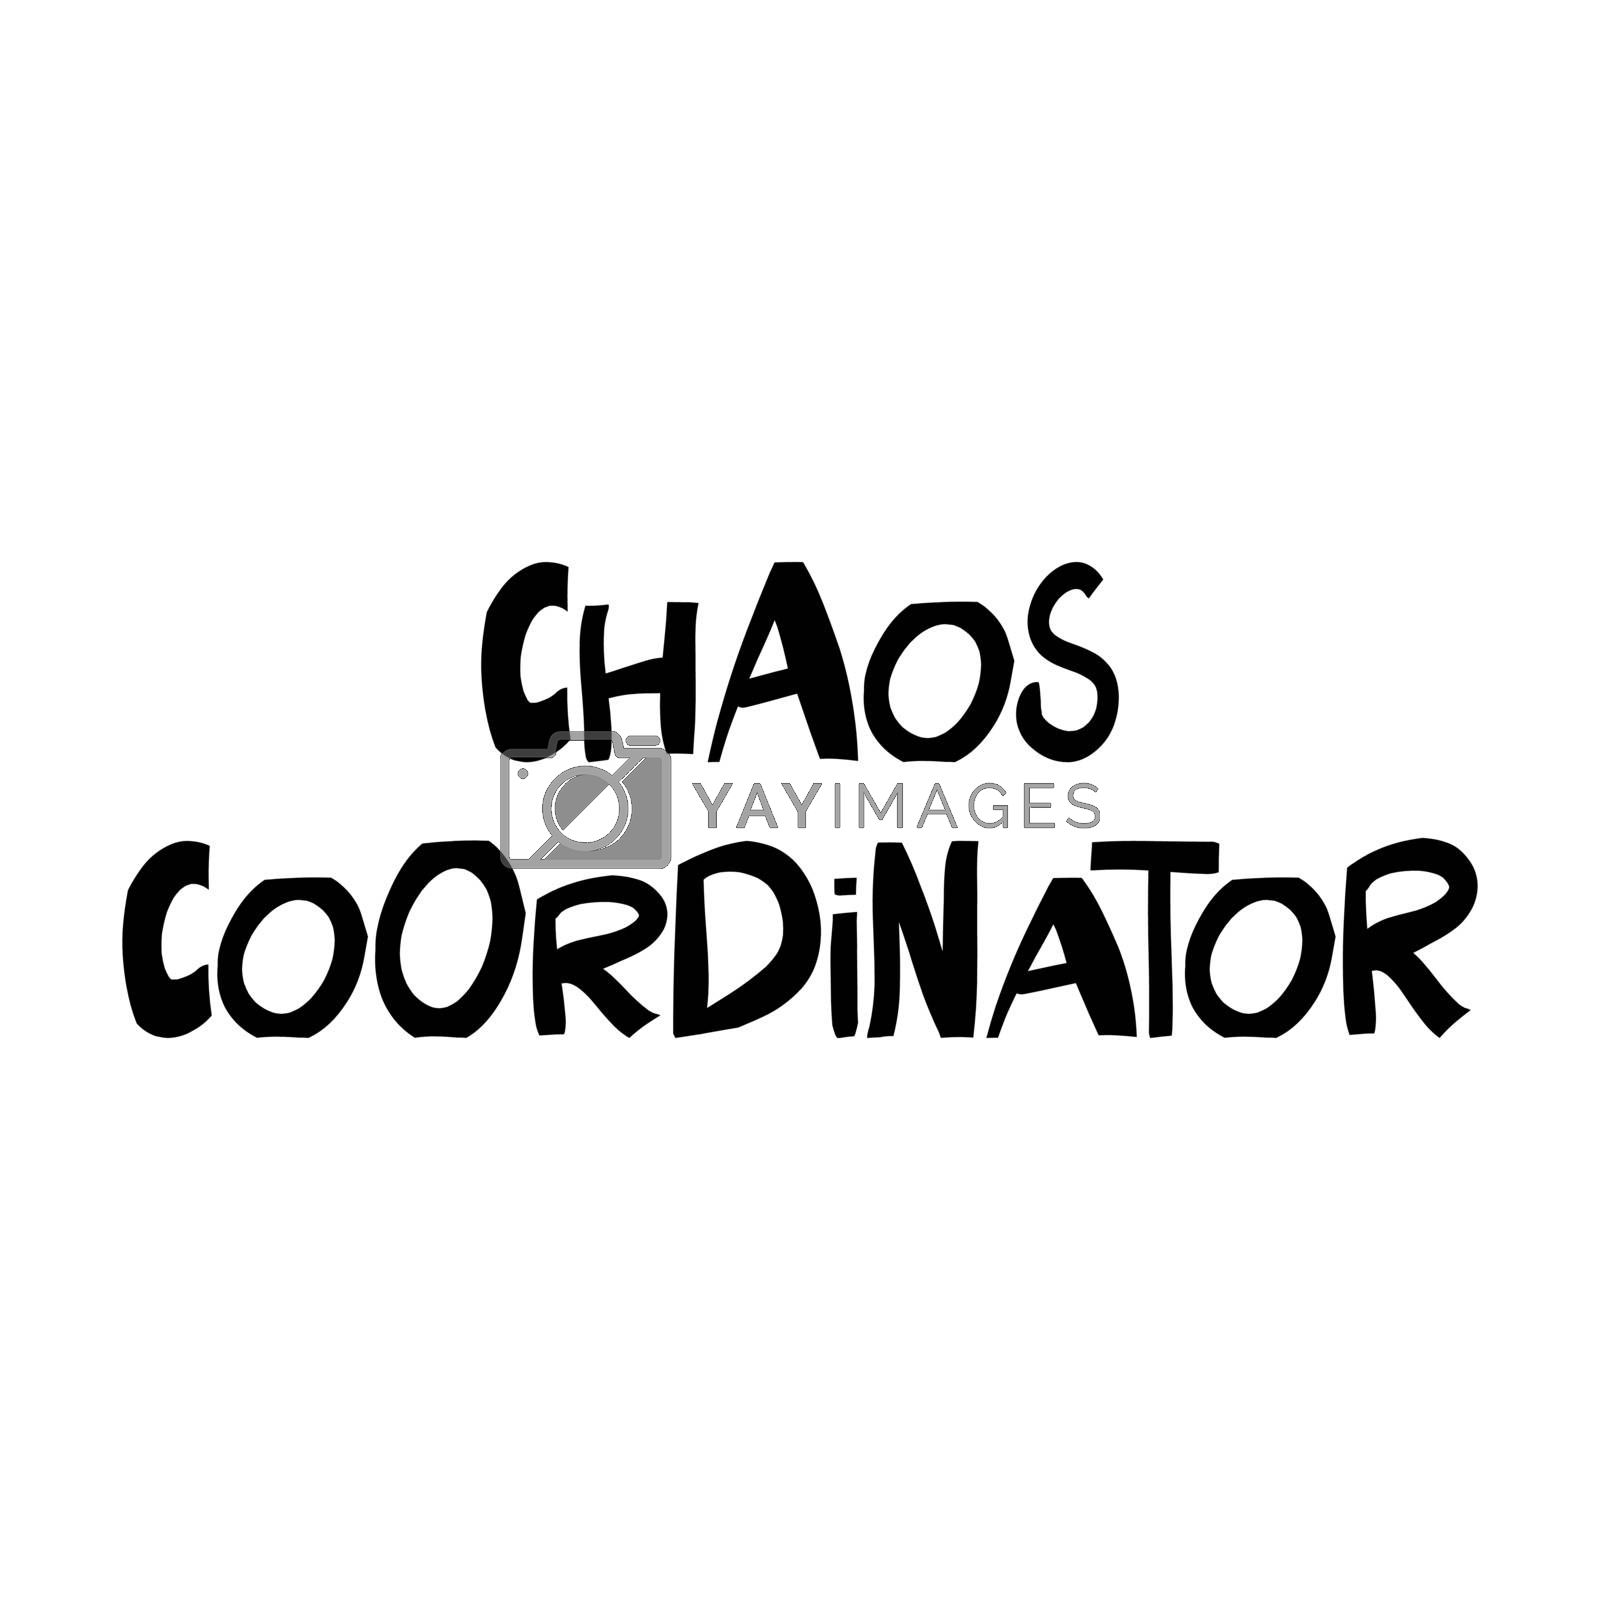 Chaos coordinator. Cute hand drawn lettering in modern scandinavian style. Isolated on white. Vector stock illustration.